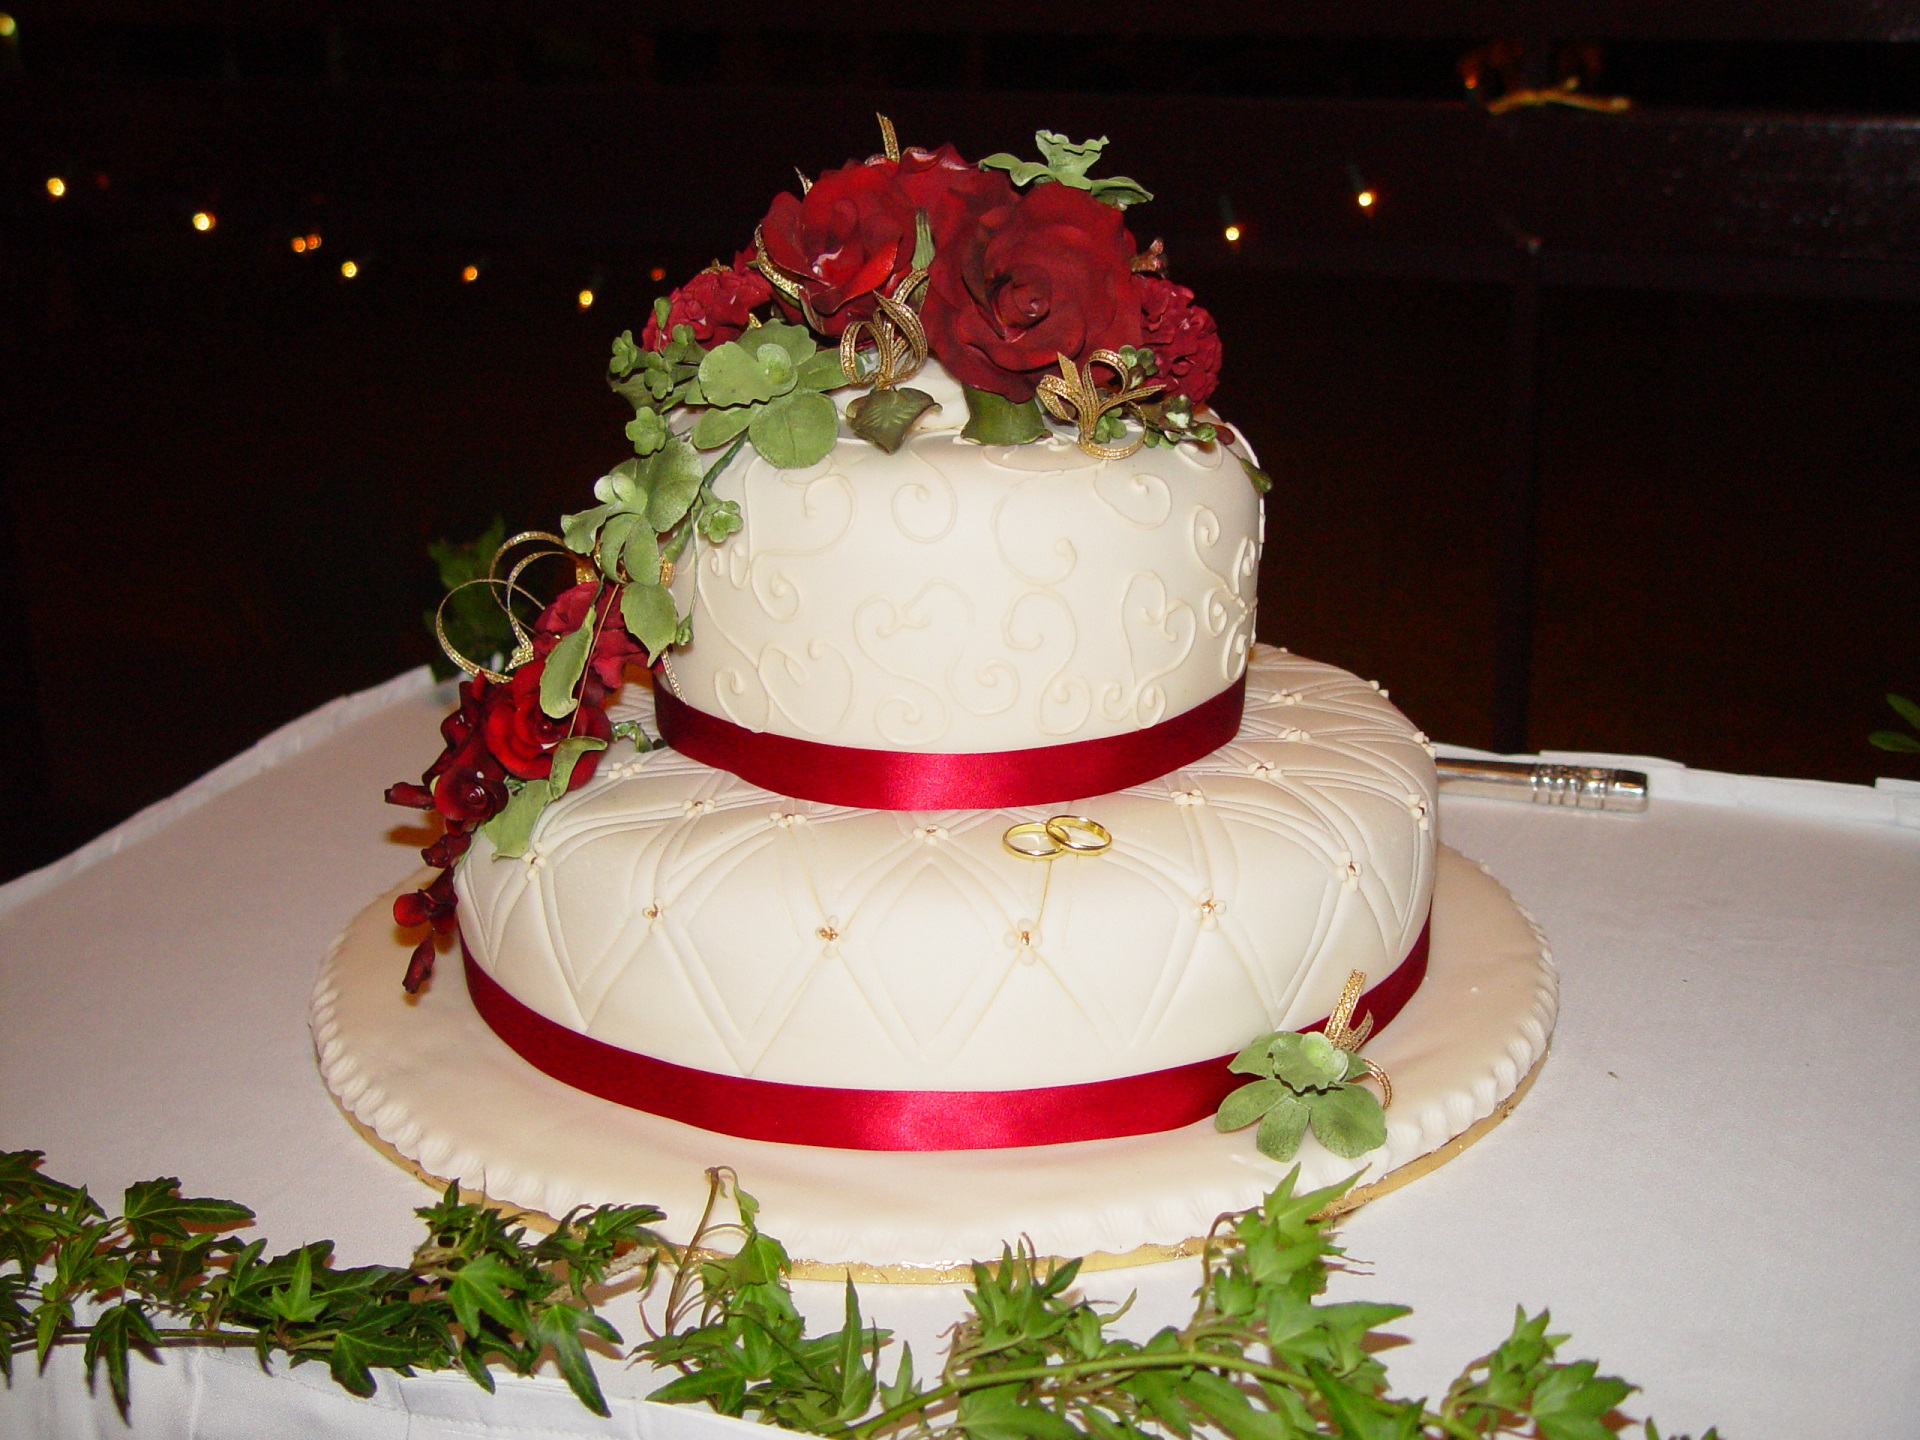 Wedding Cake Full HD Wallpaper and Background Image  1920x1440  ID:550680